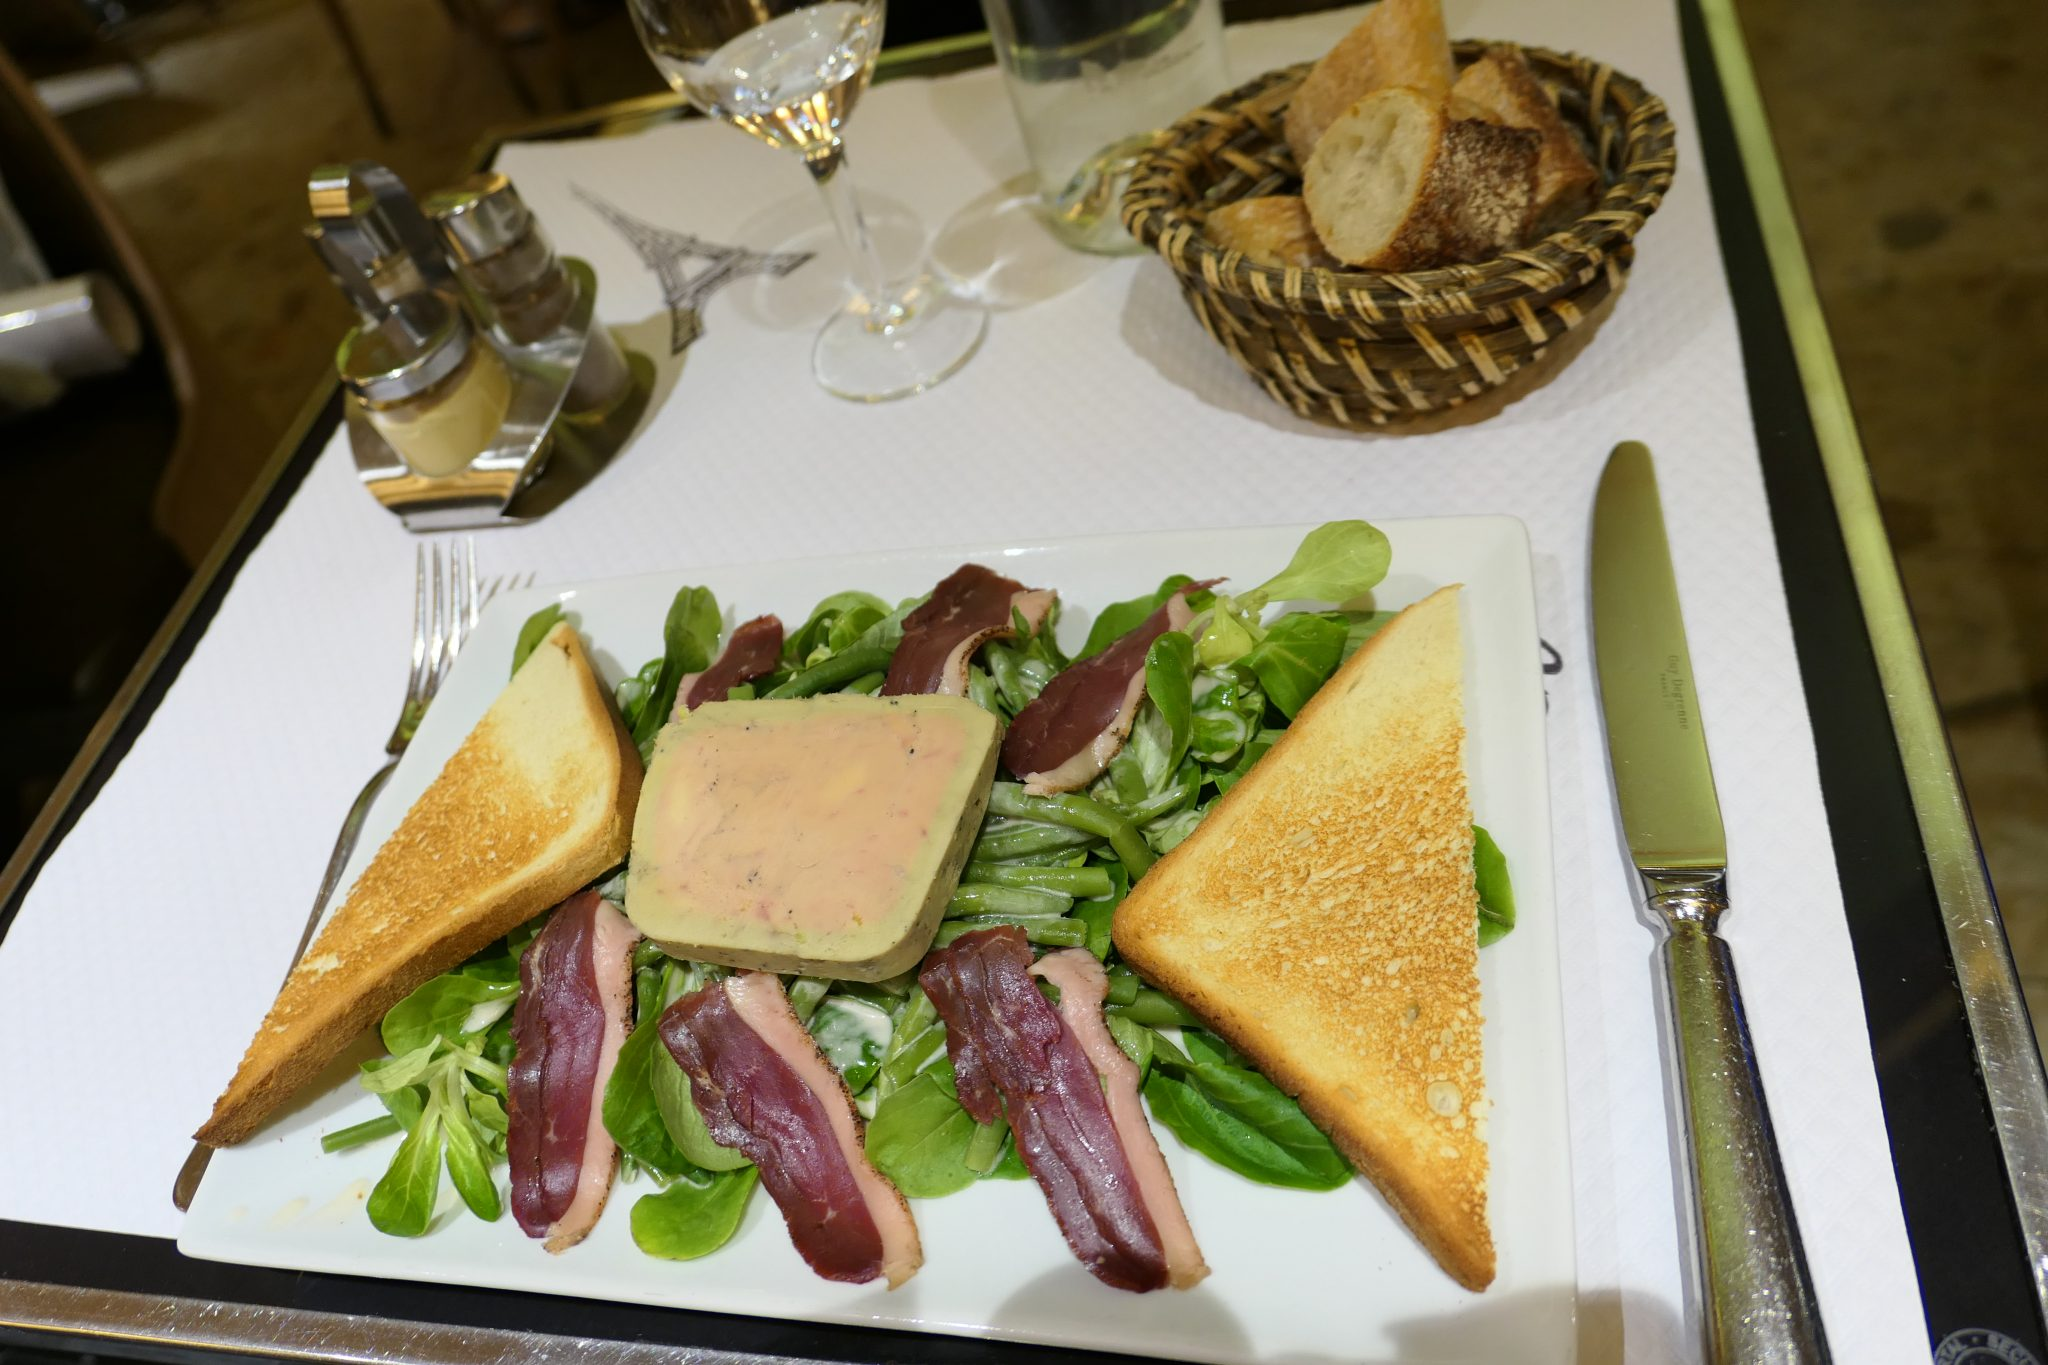 Duck salad with pate